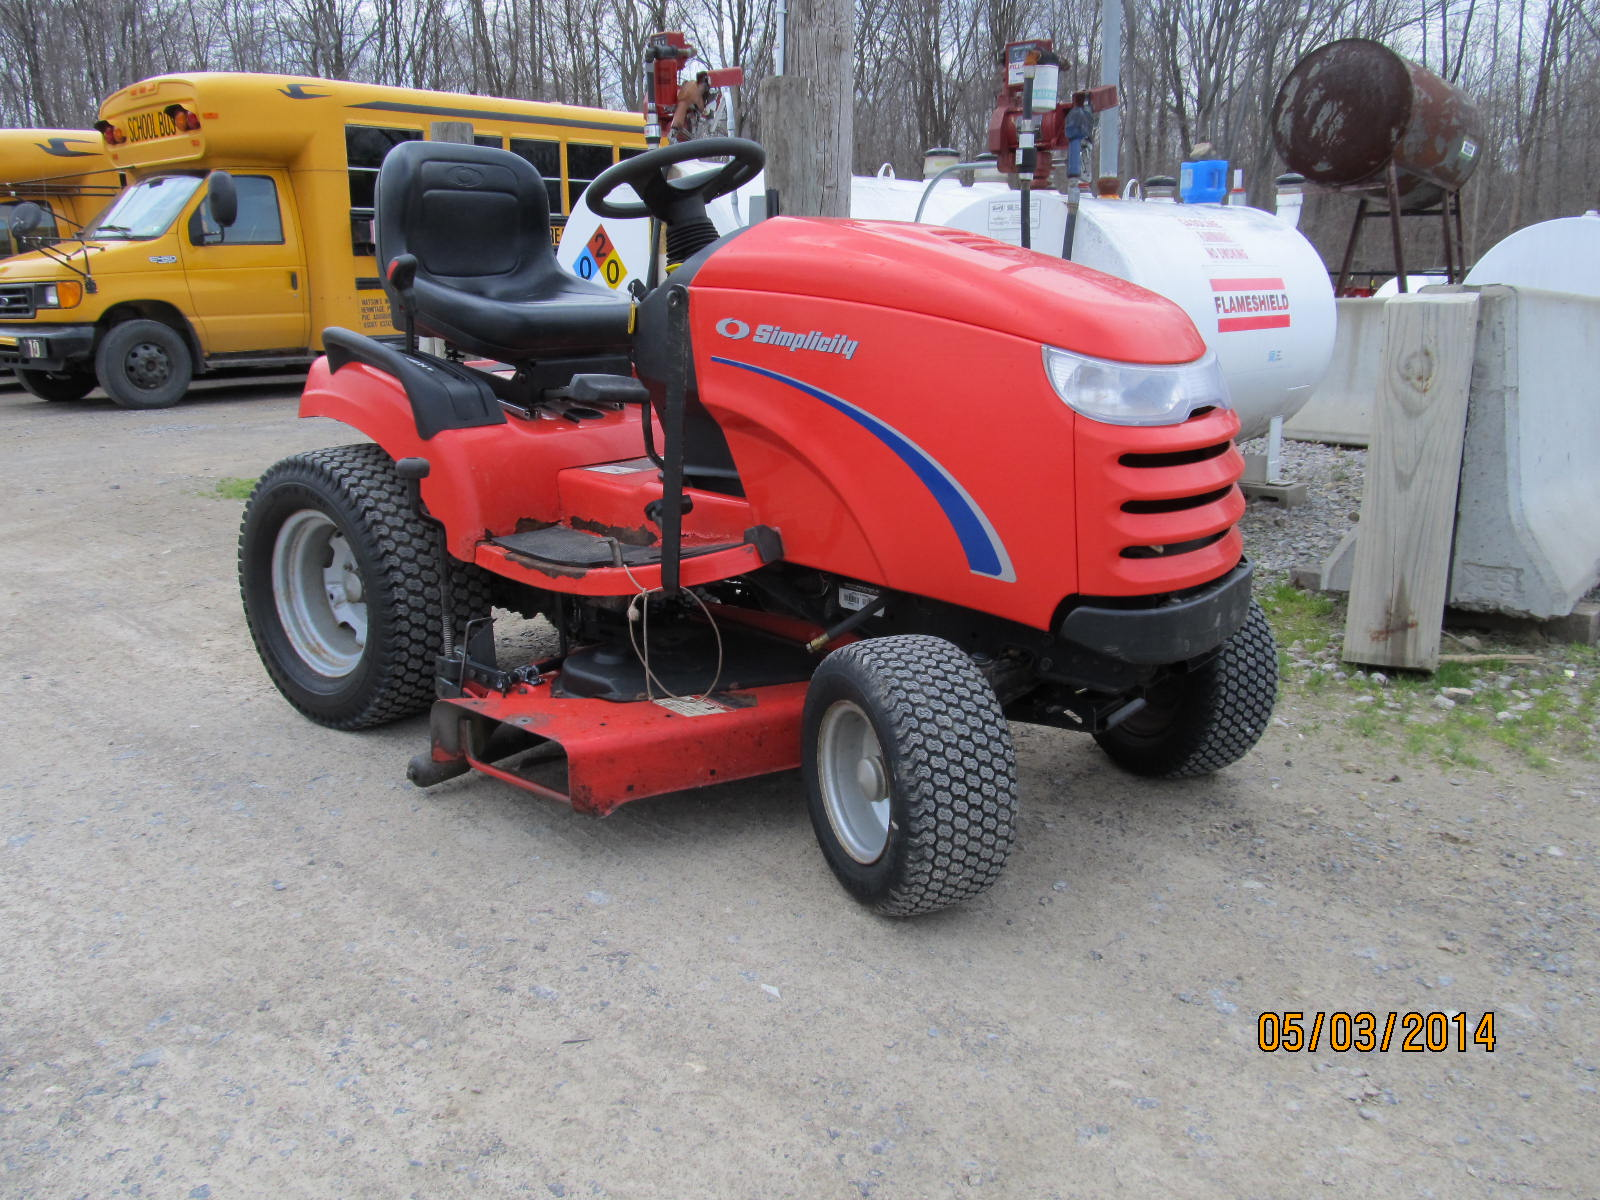 Simplicity CONQUEST 16H Garden Tractor for sale in Hermitage, PA